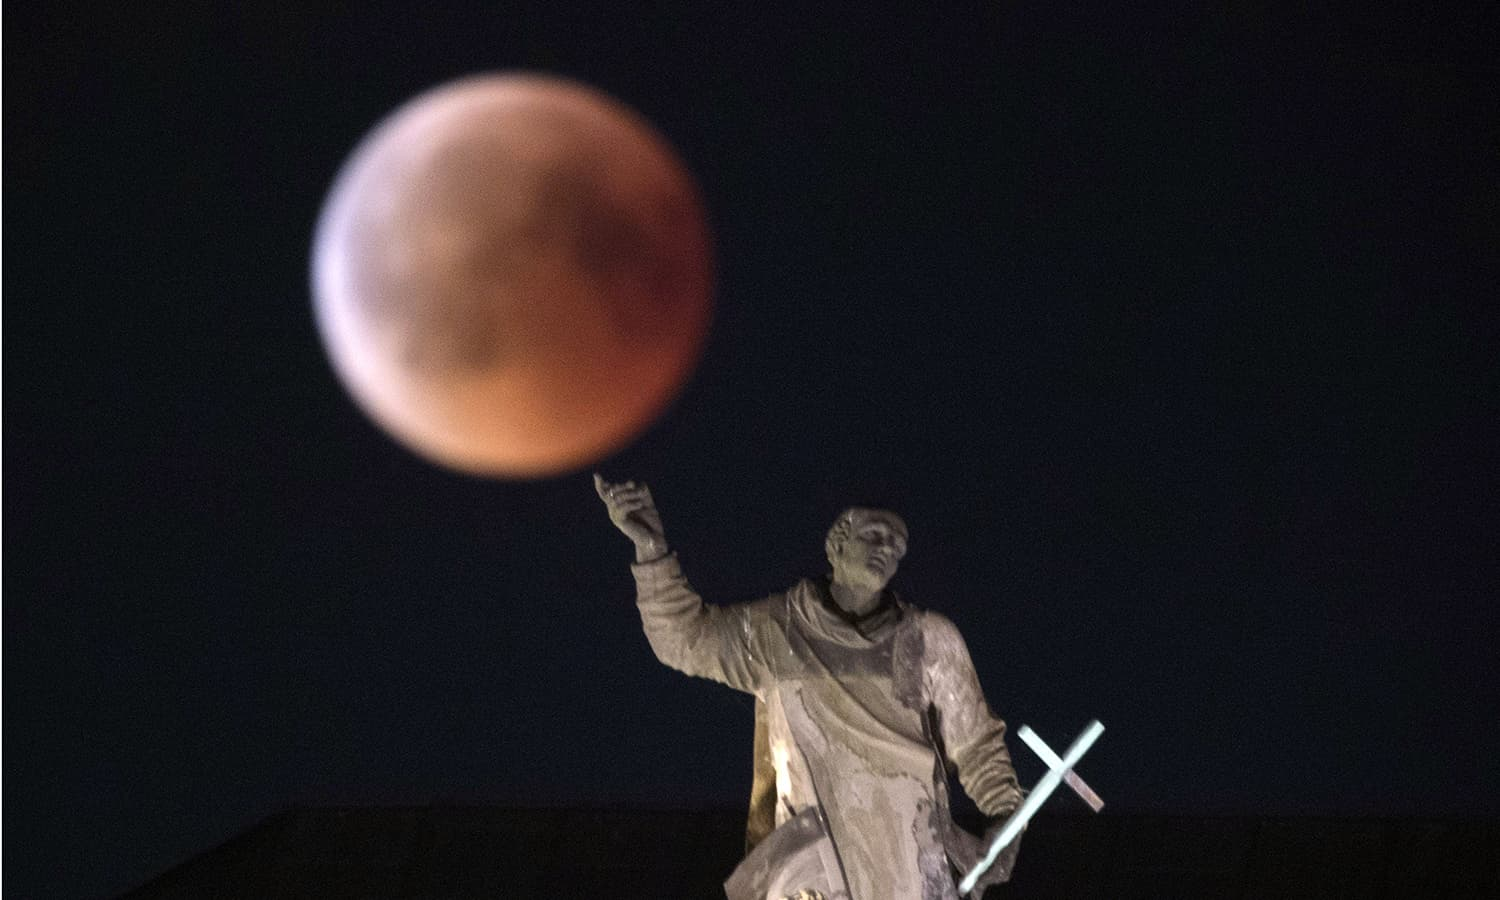 The moon turns red during a total lunar eclipse, as seen from Dresden, Germany. — AP